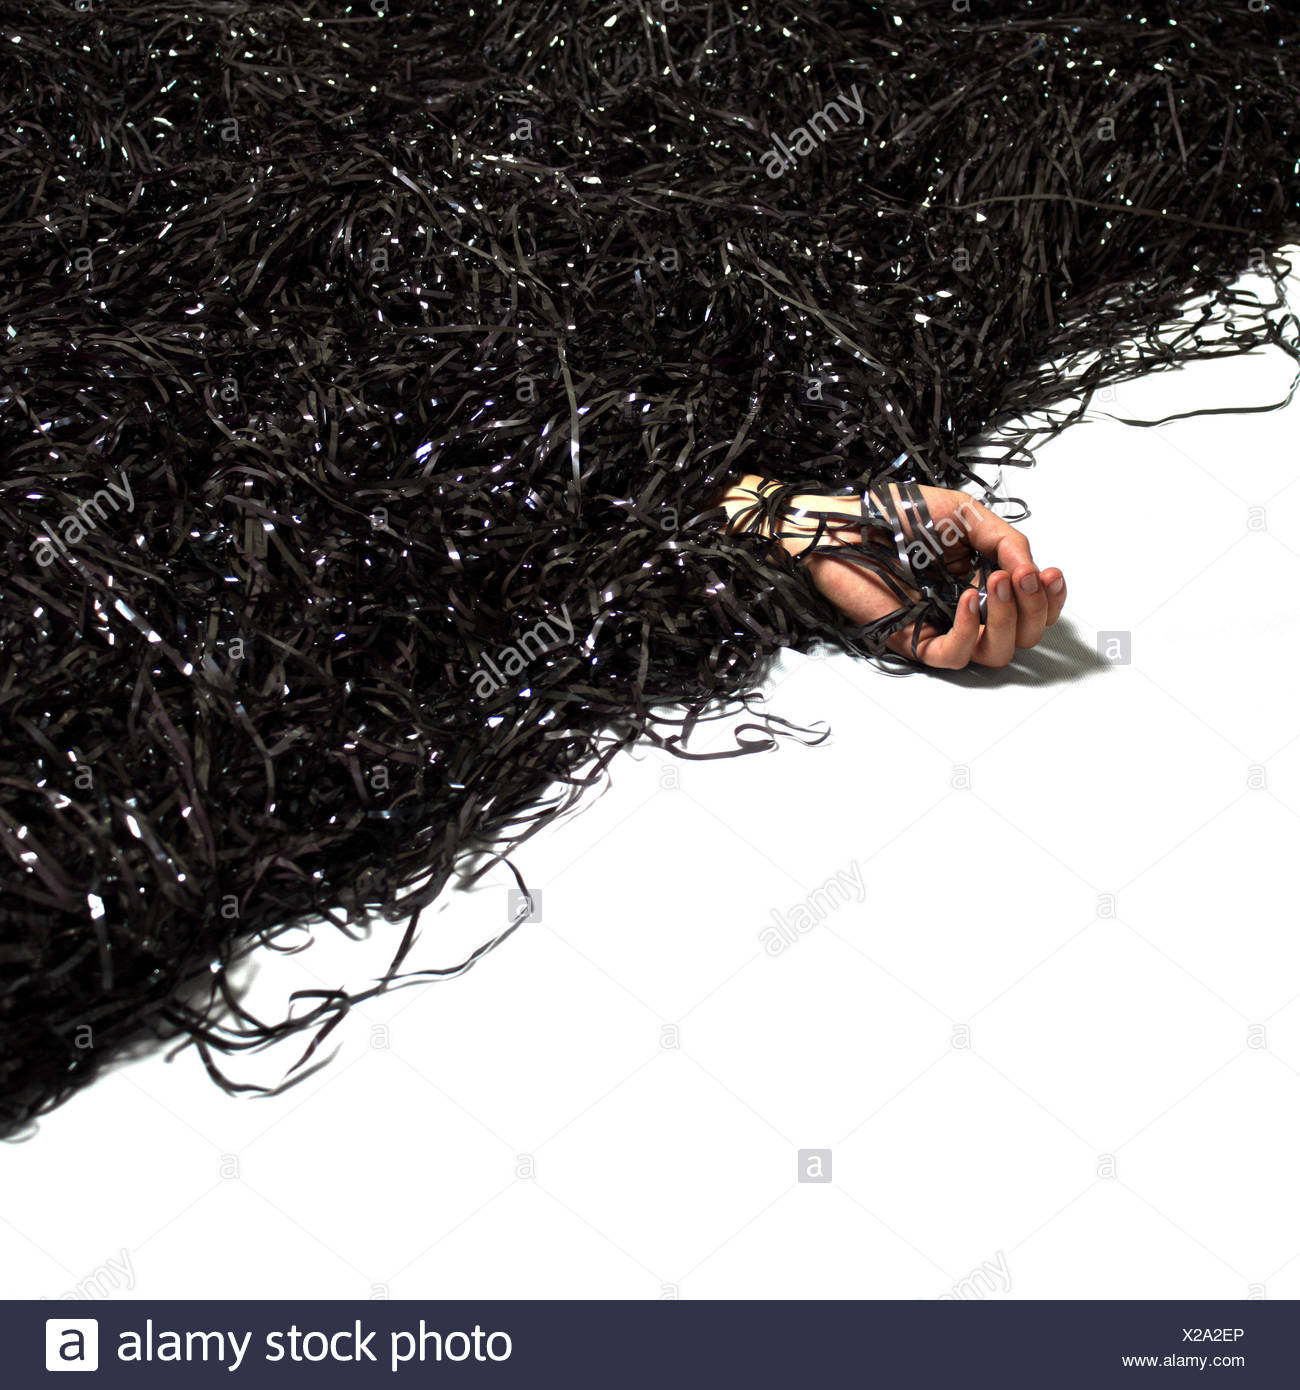 Man's hand emerging from pile of recording tape - Stock Image